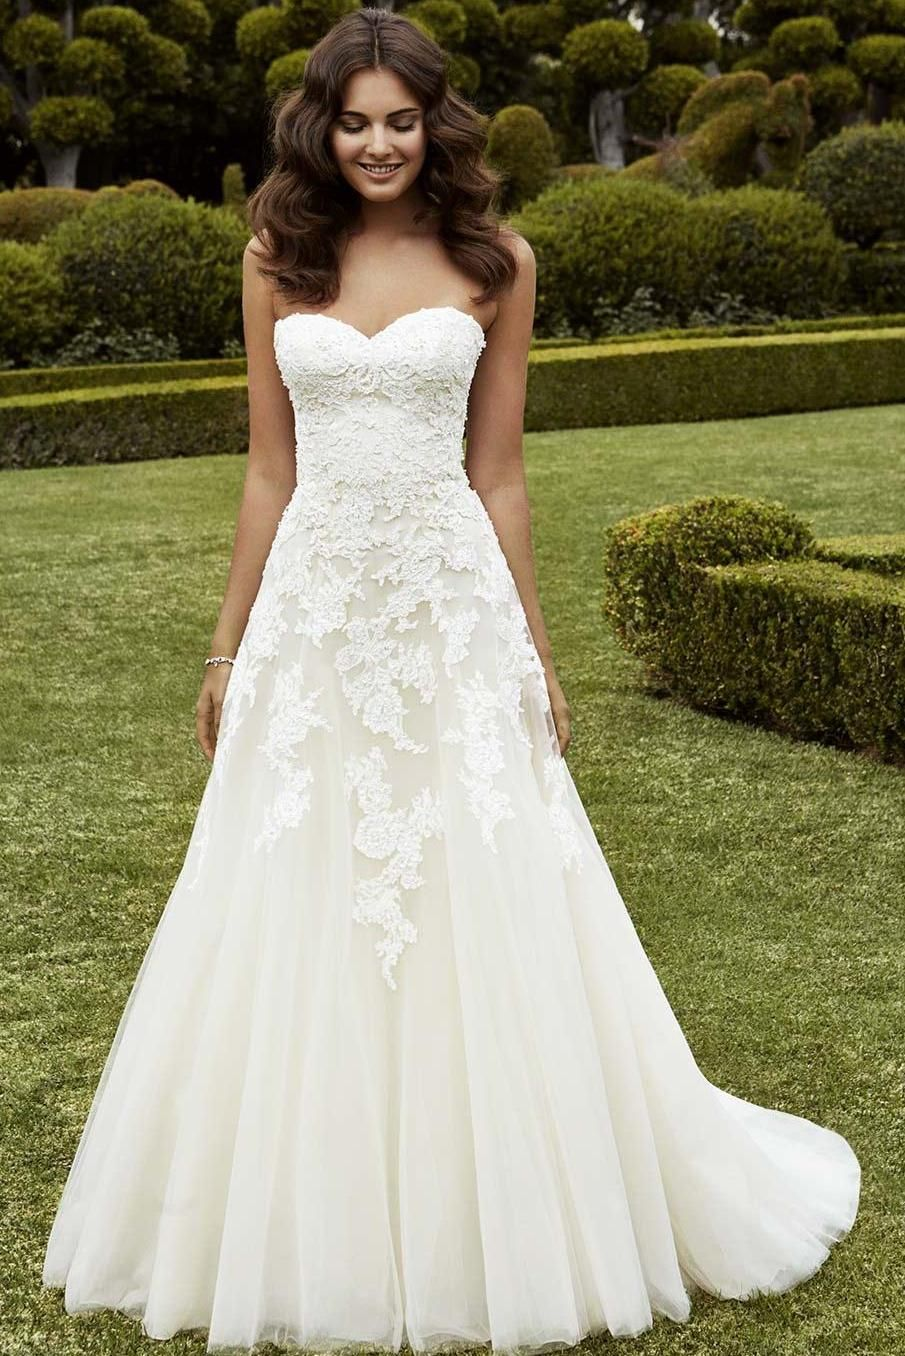 Blue wedding dresses denver - Find This Pin And More On Wedding Dress